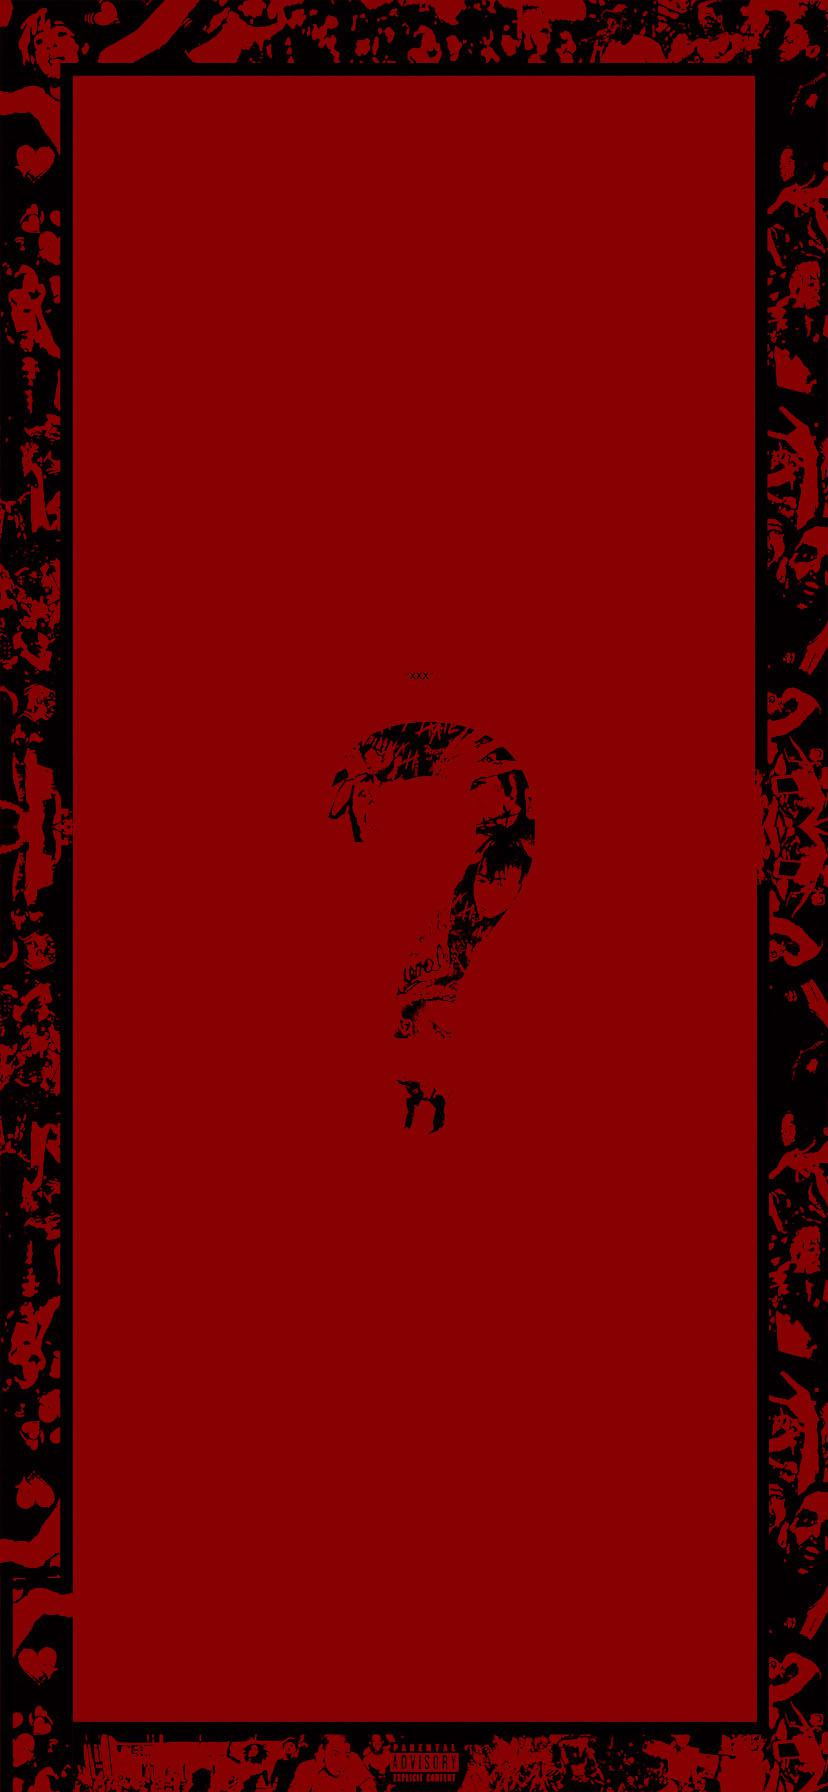 for septicsweet iphone 11 gra nt red wallpaper